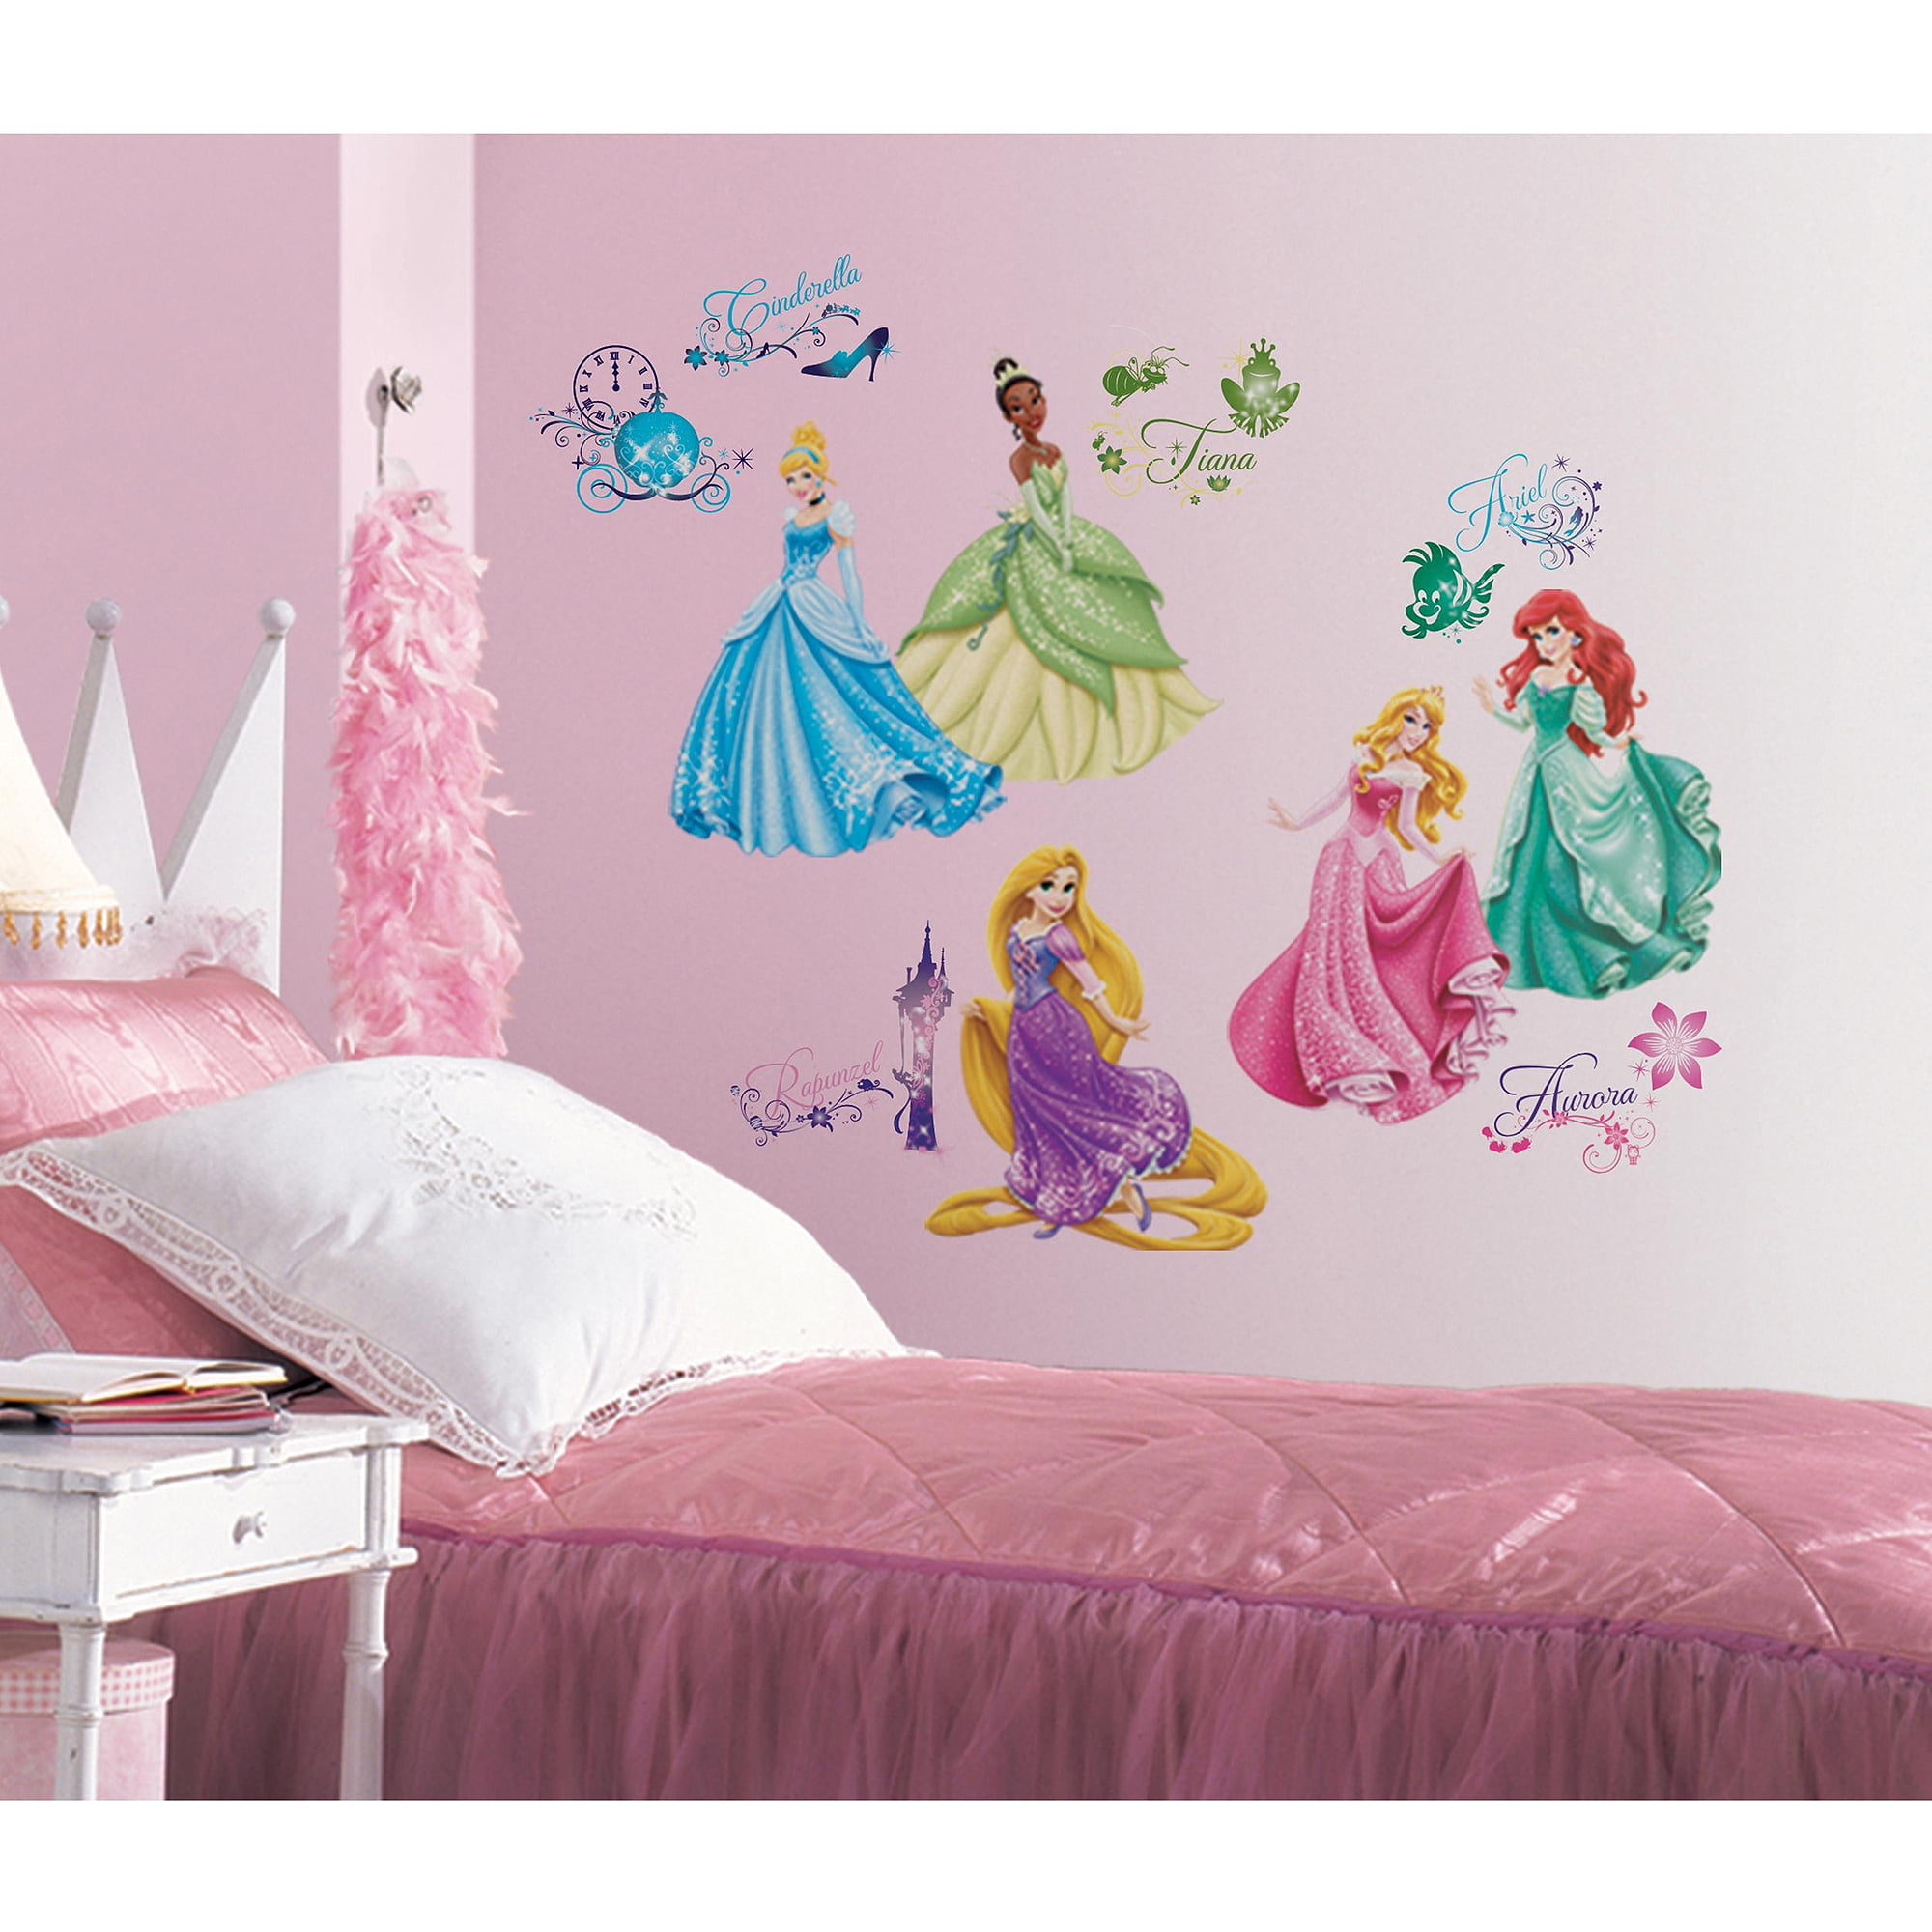 Disney Princess Wall Decor disney princess royal debut peel-and-stick wall decals - walmart